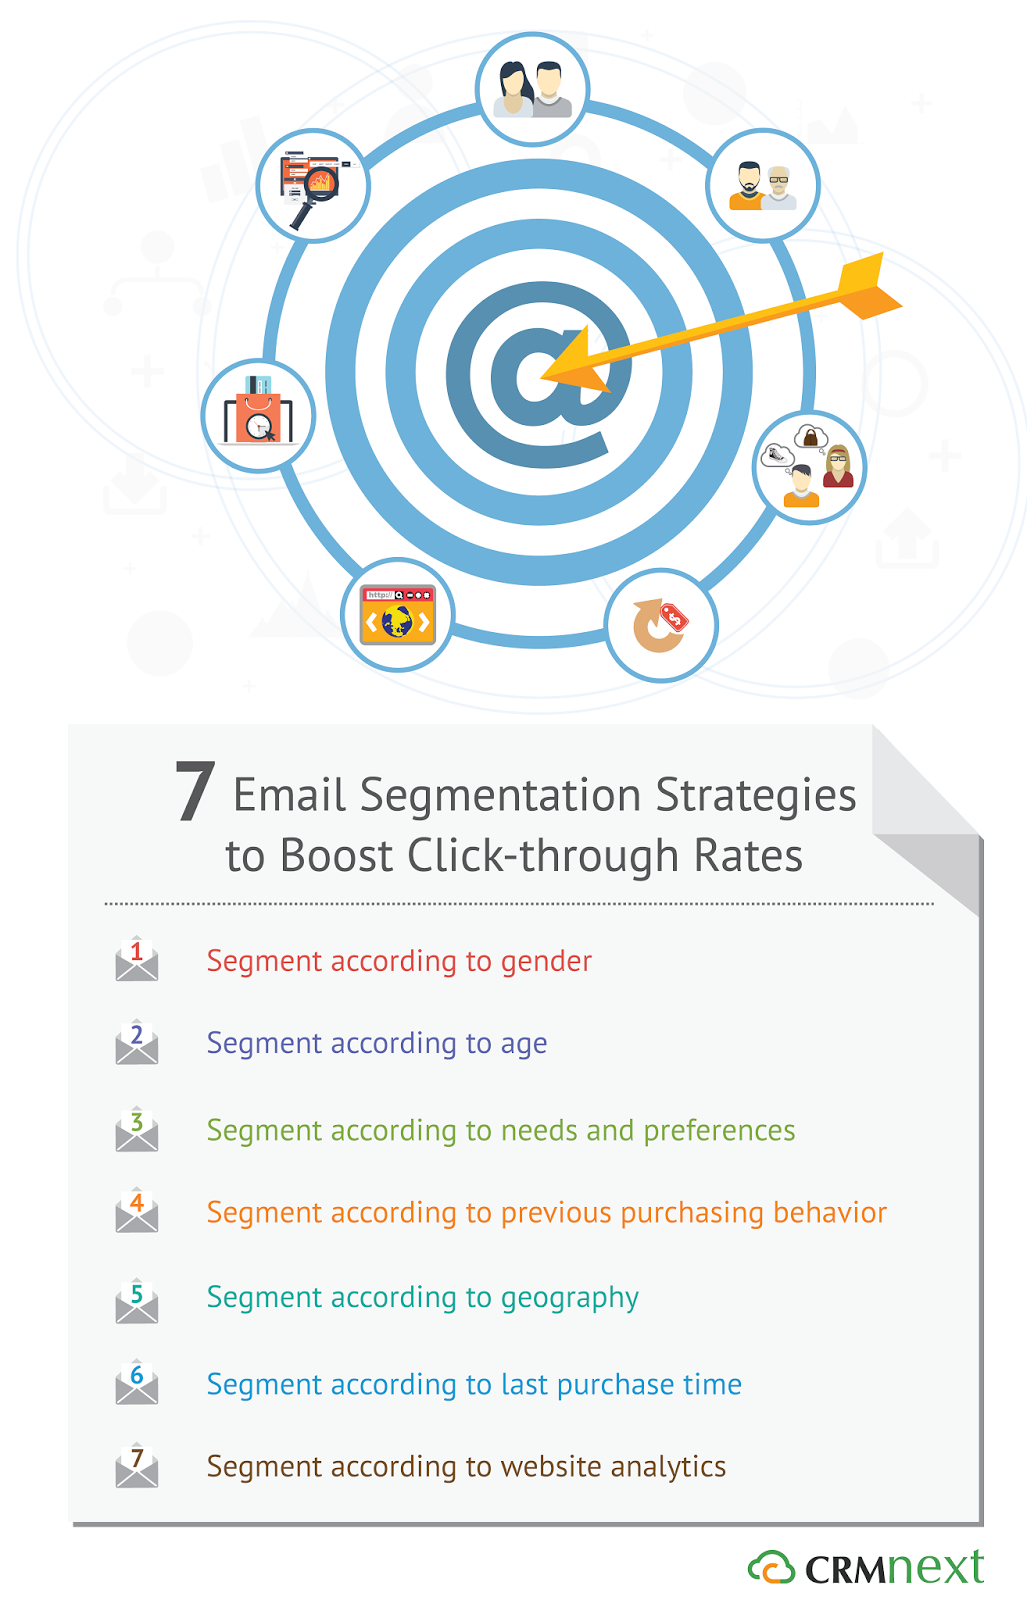 7 Email Segmentation Strategies to Boost Click-through Rates